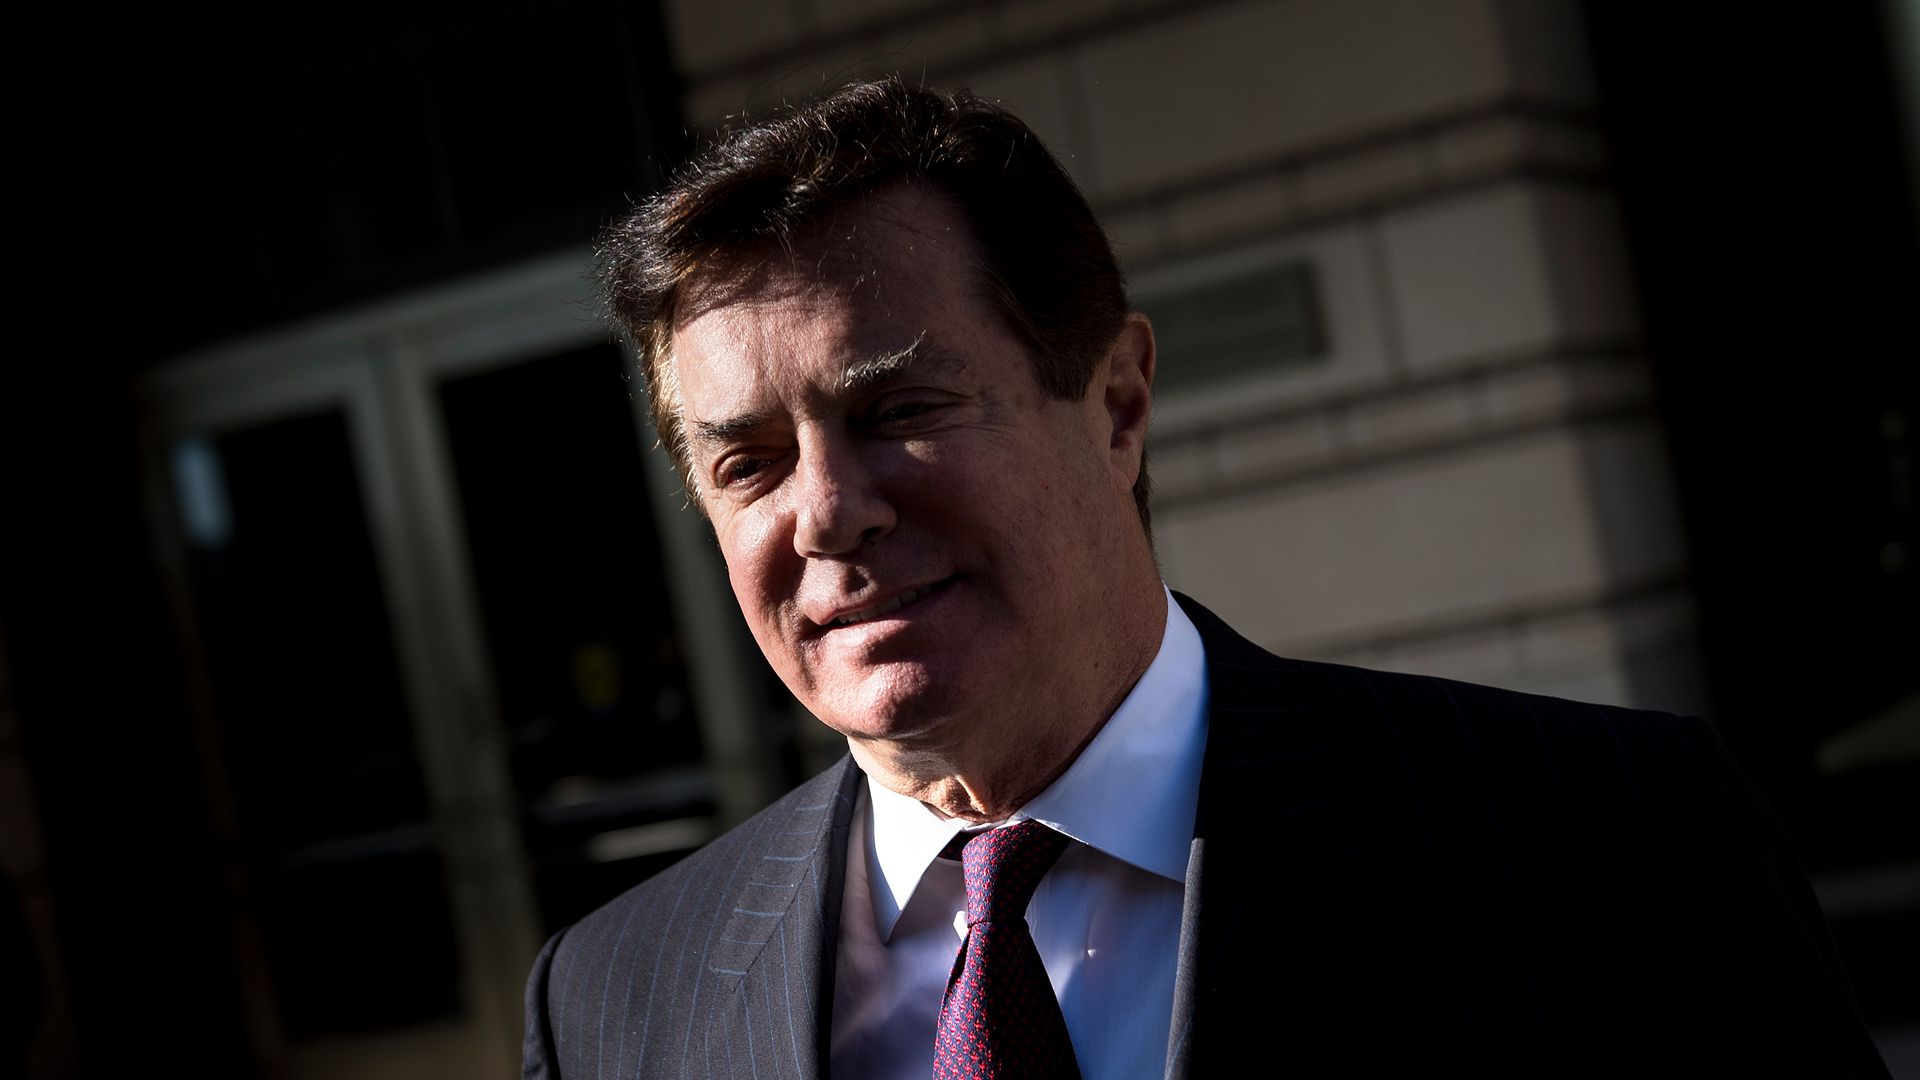 Paul Manafort in partial shade.